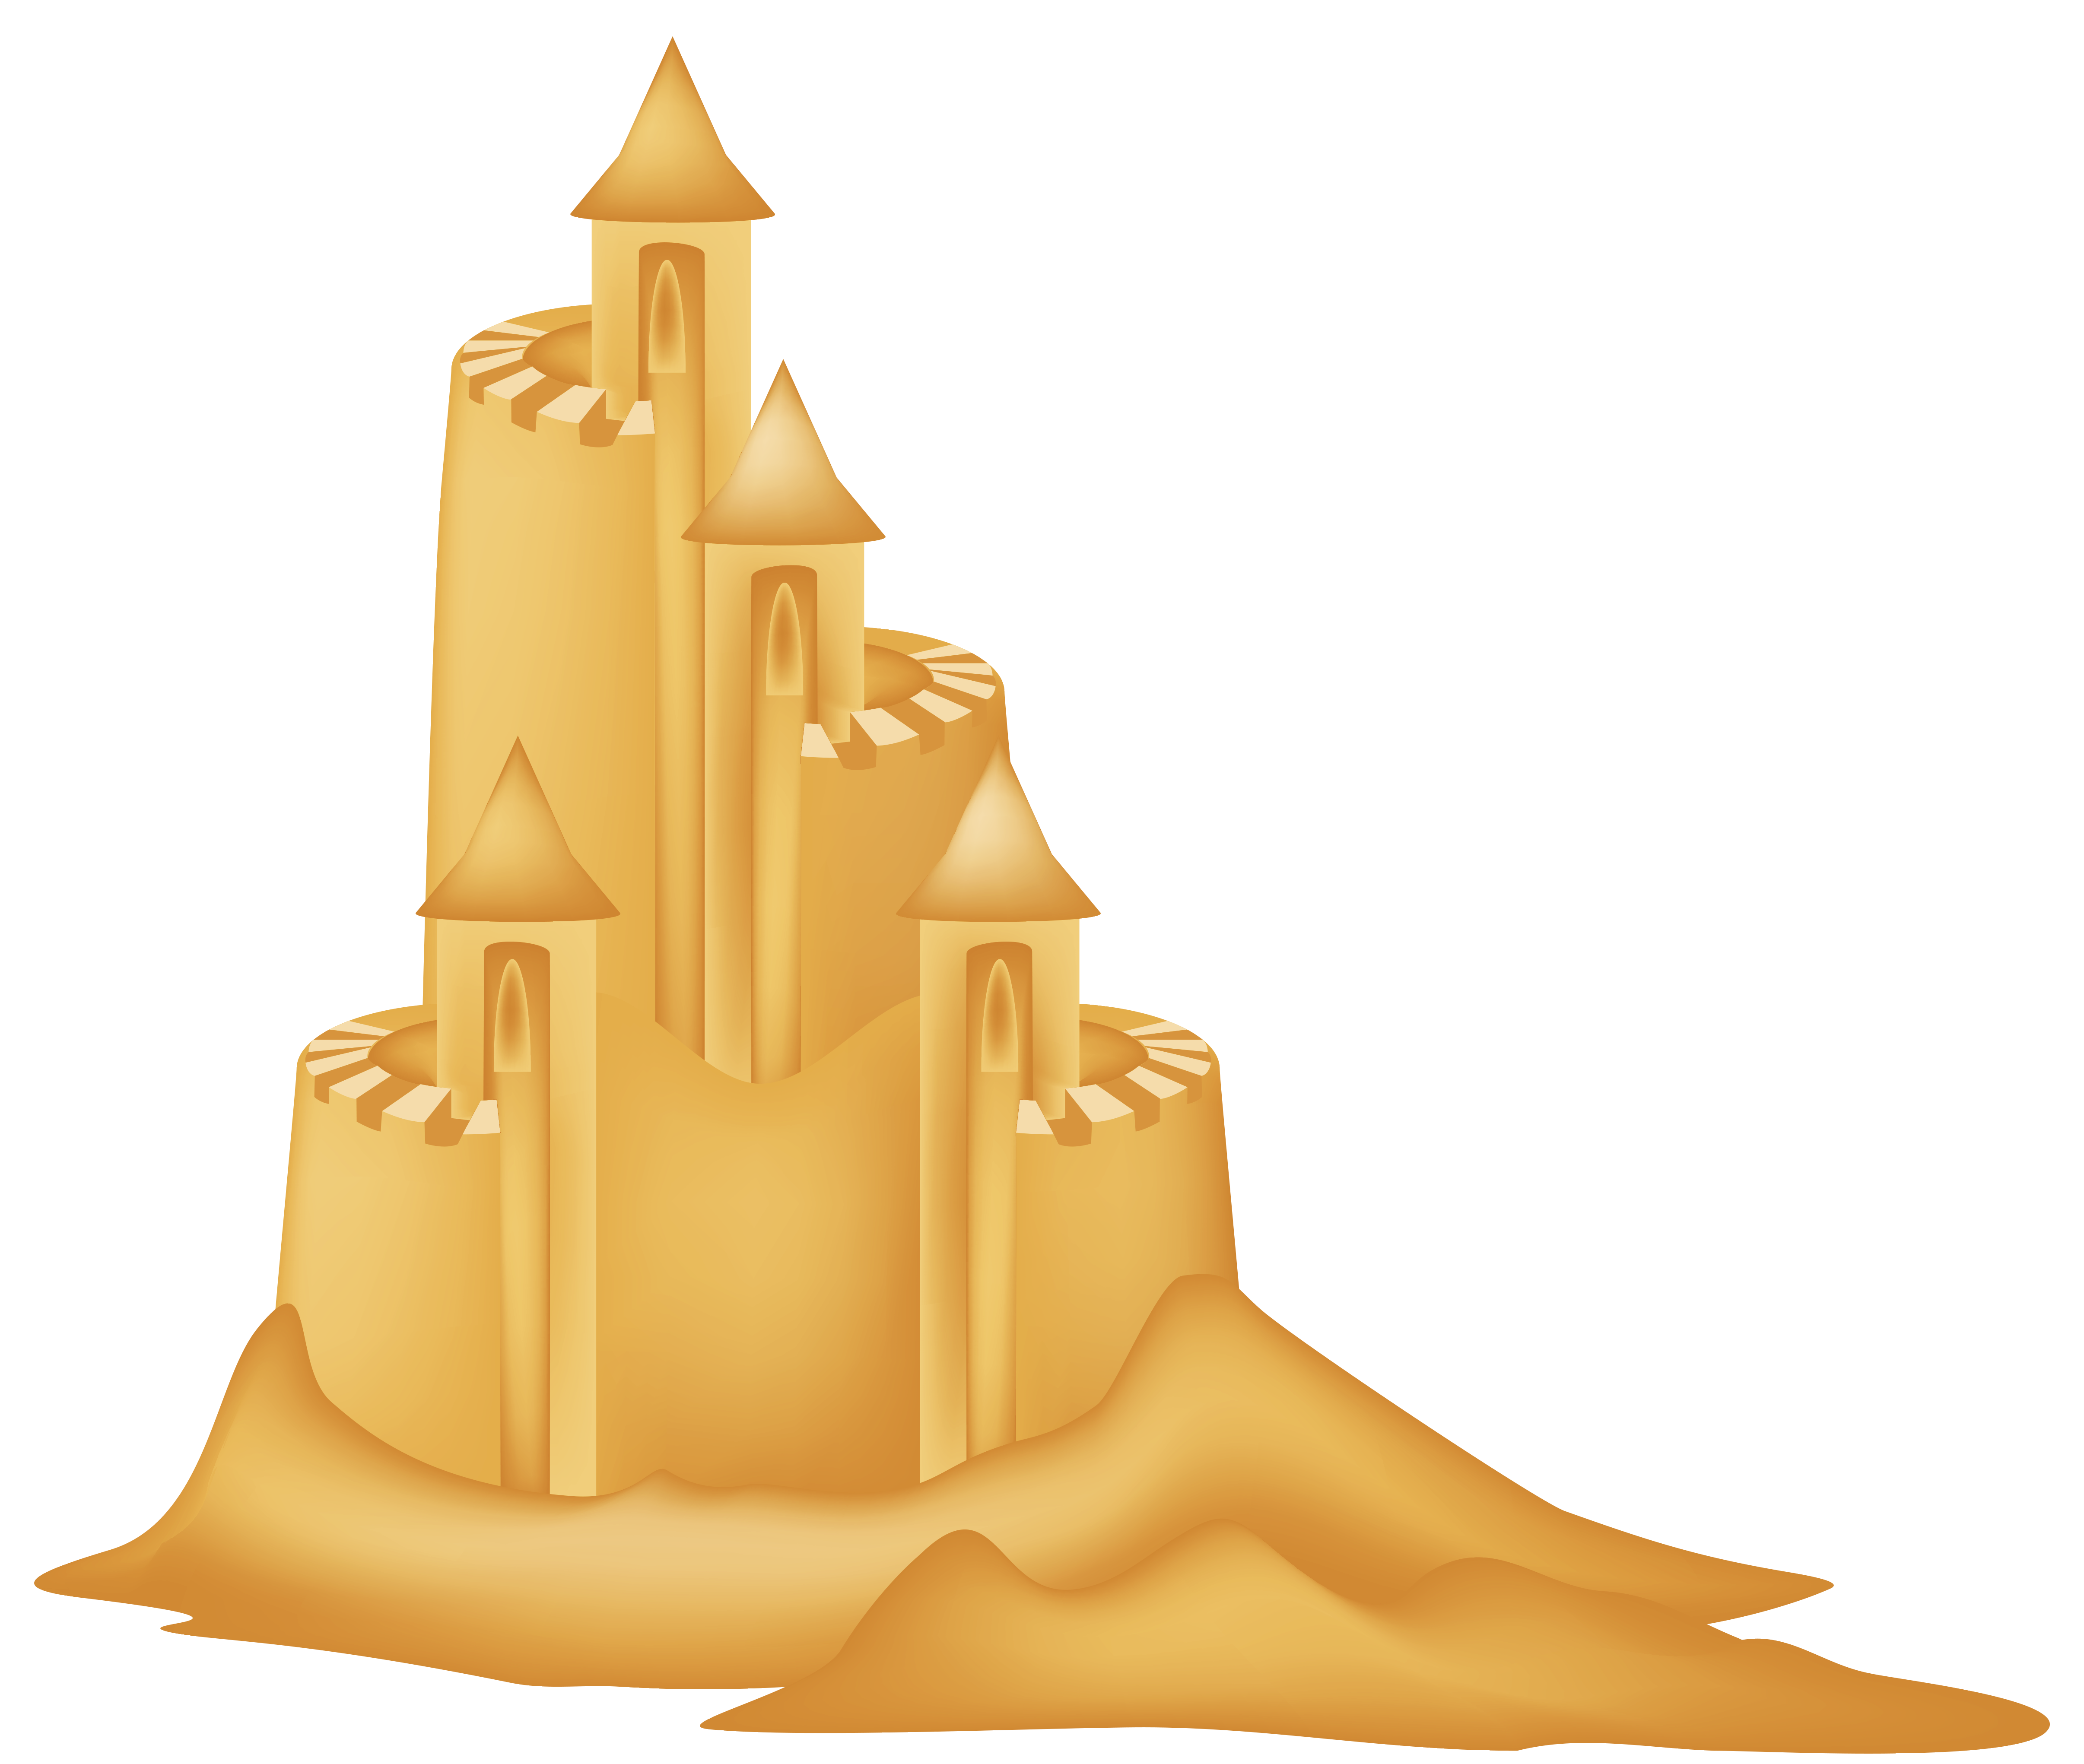 Sand Castle Png - Sand Castle PNG Clipart Picture | Gallery Yopriceville - High ...